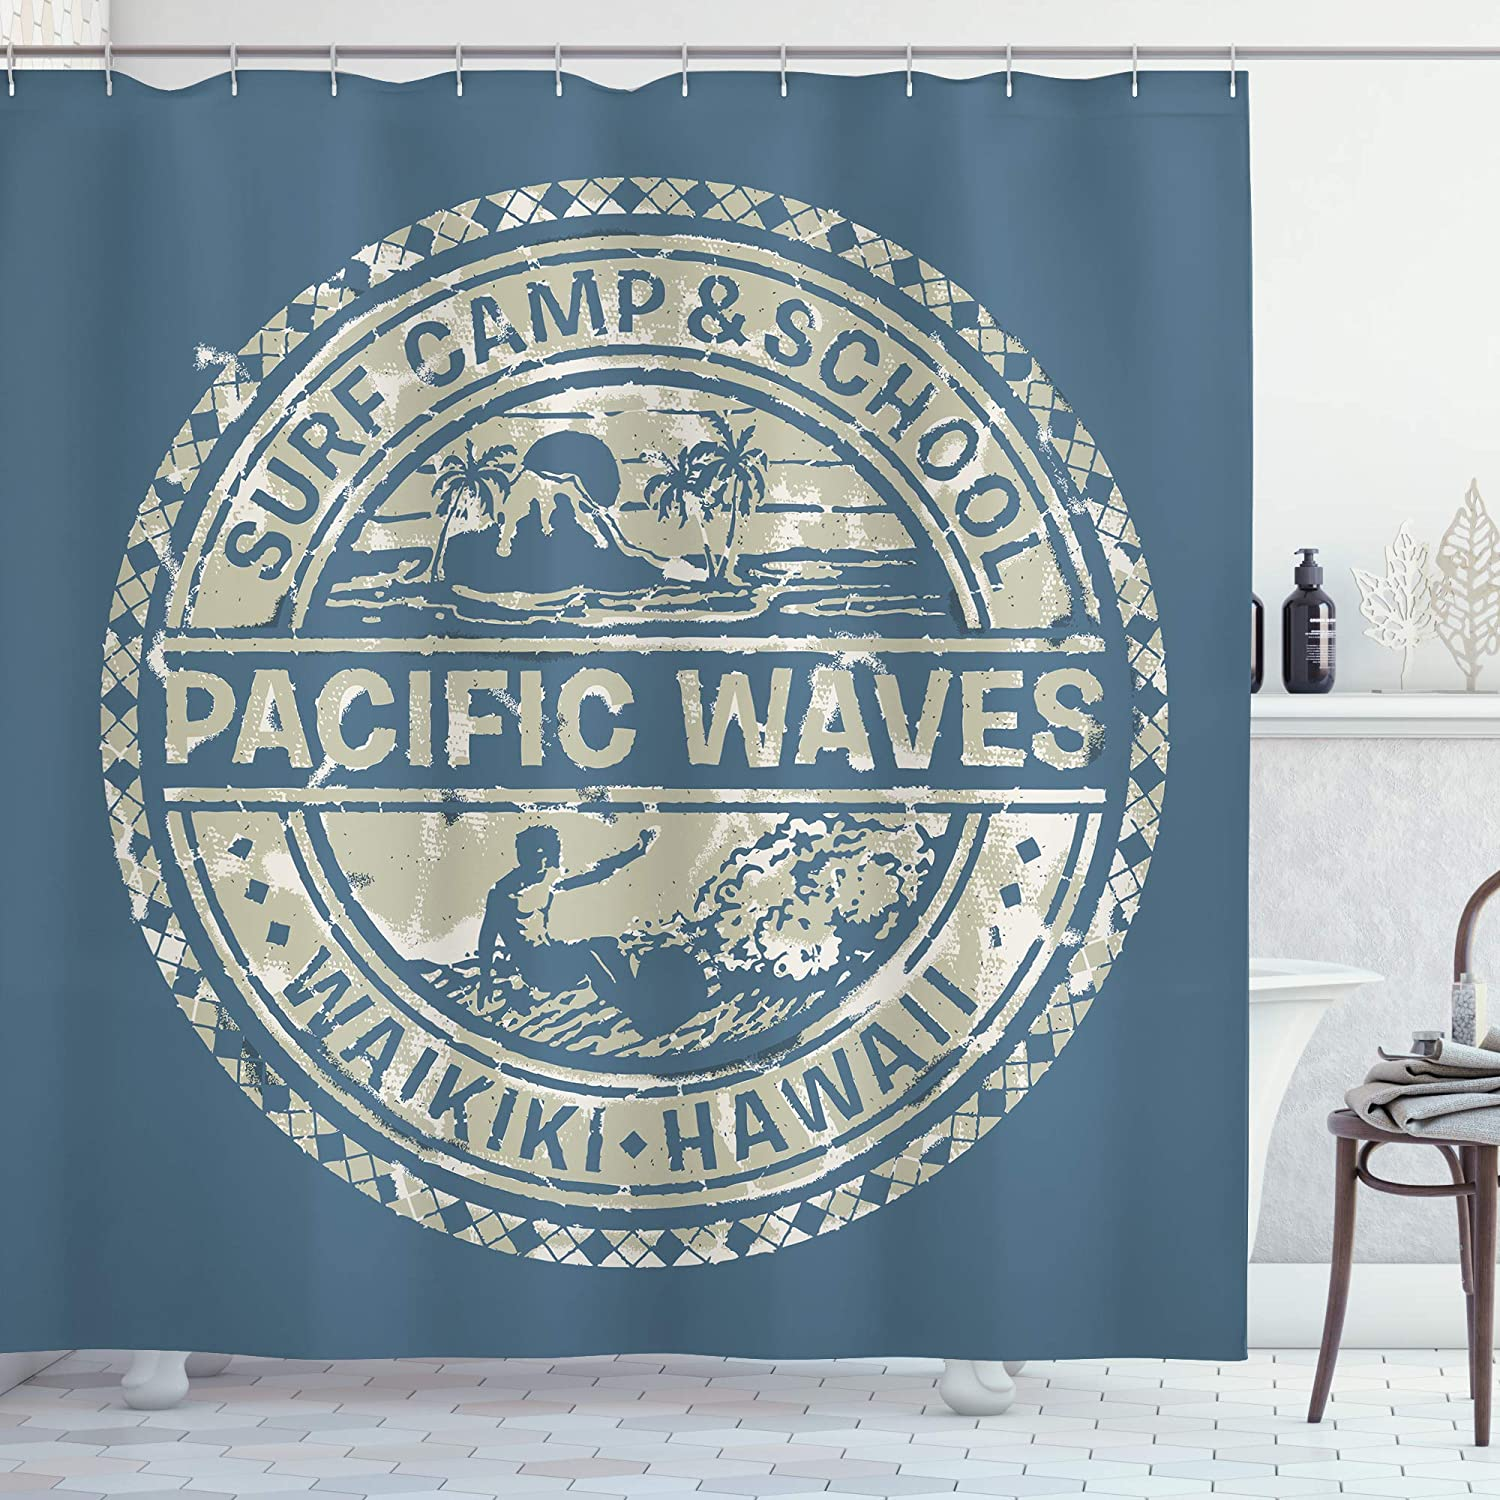 Ambesonne Modern Shower Curtain, Pacific Waves Surf Camp and Hawaii Logo Motif Effects Design, Cloth Fabric Bathroom Decor Set with Hooks, 70